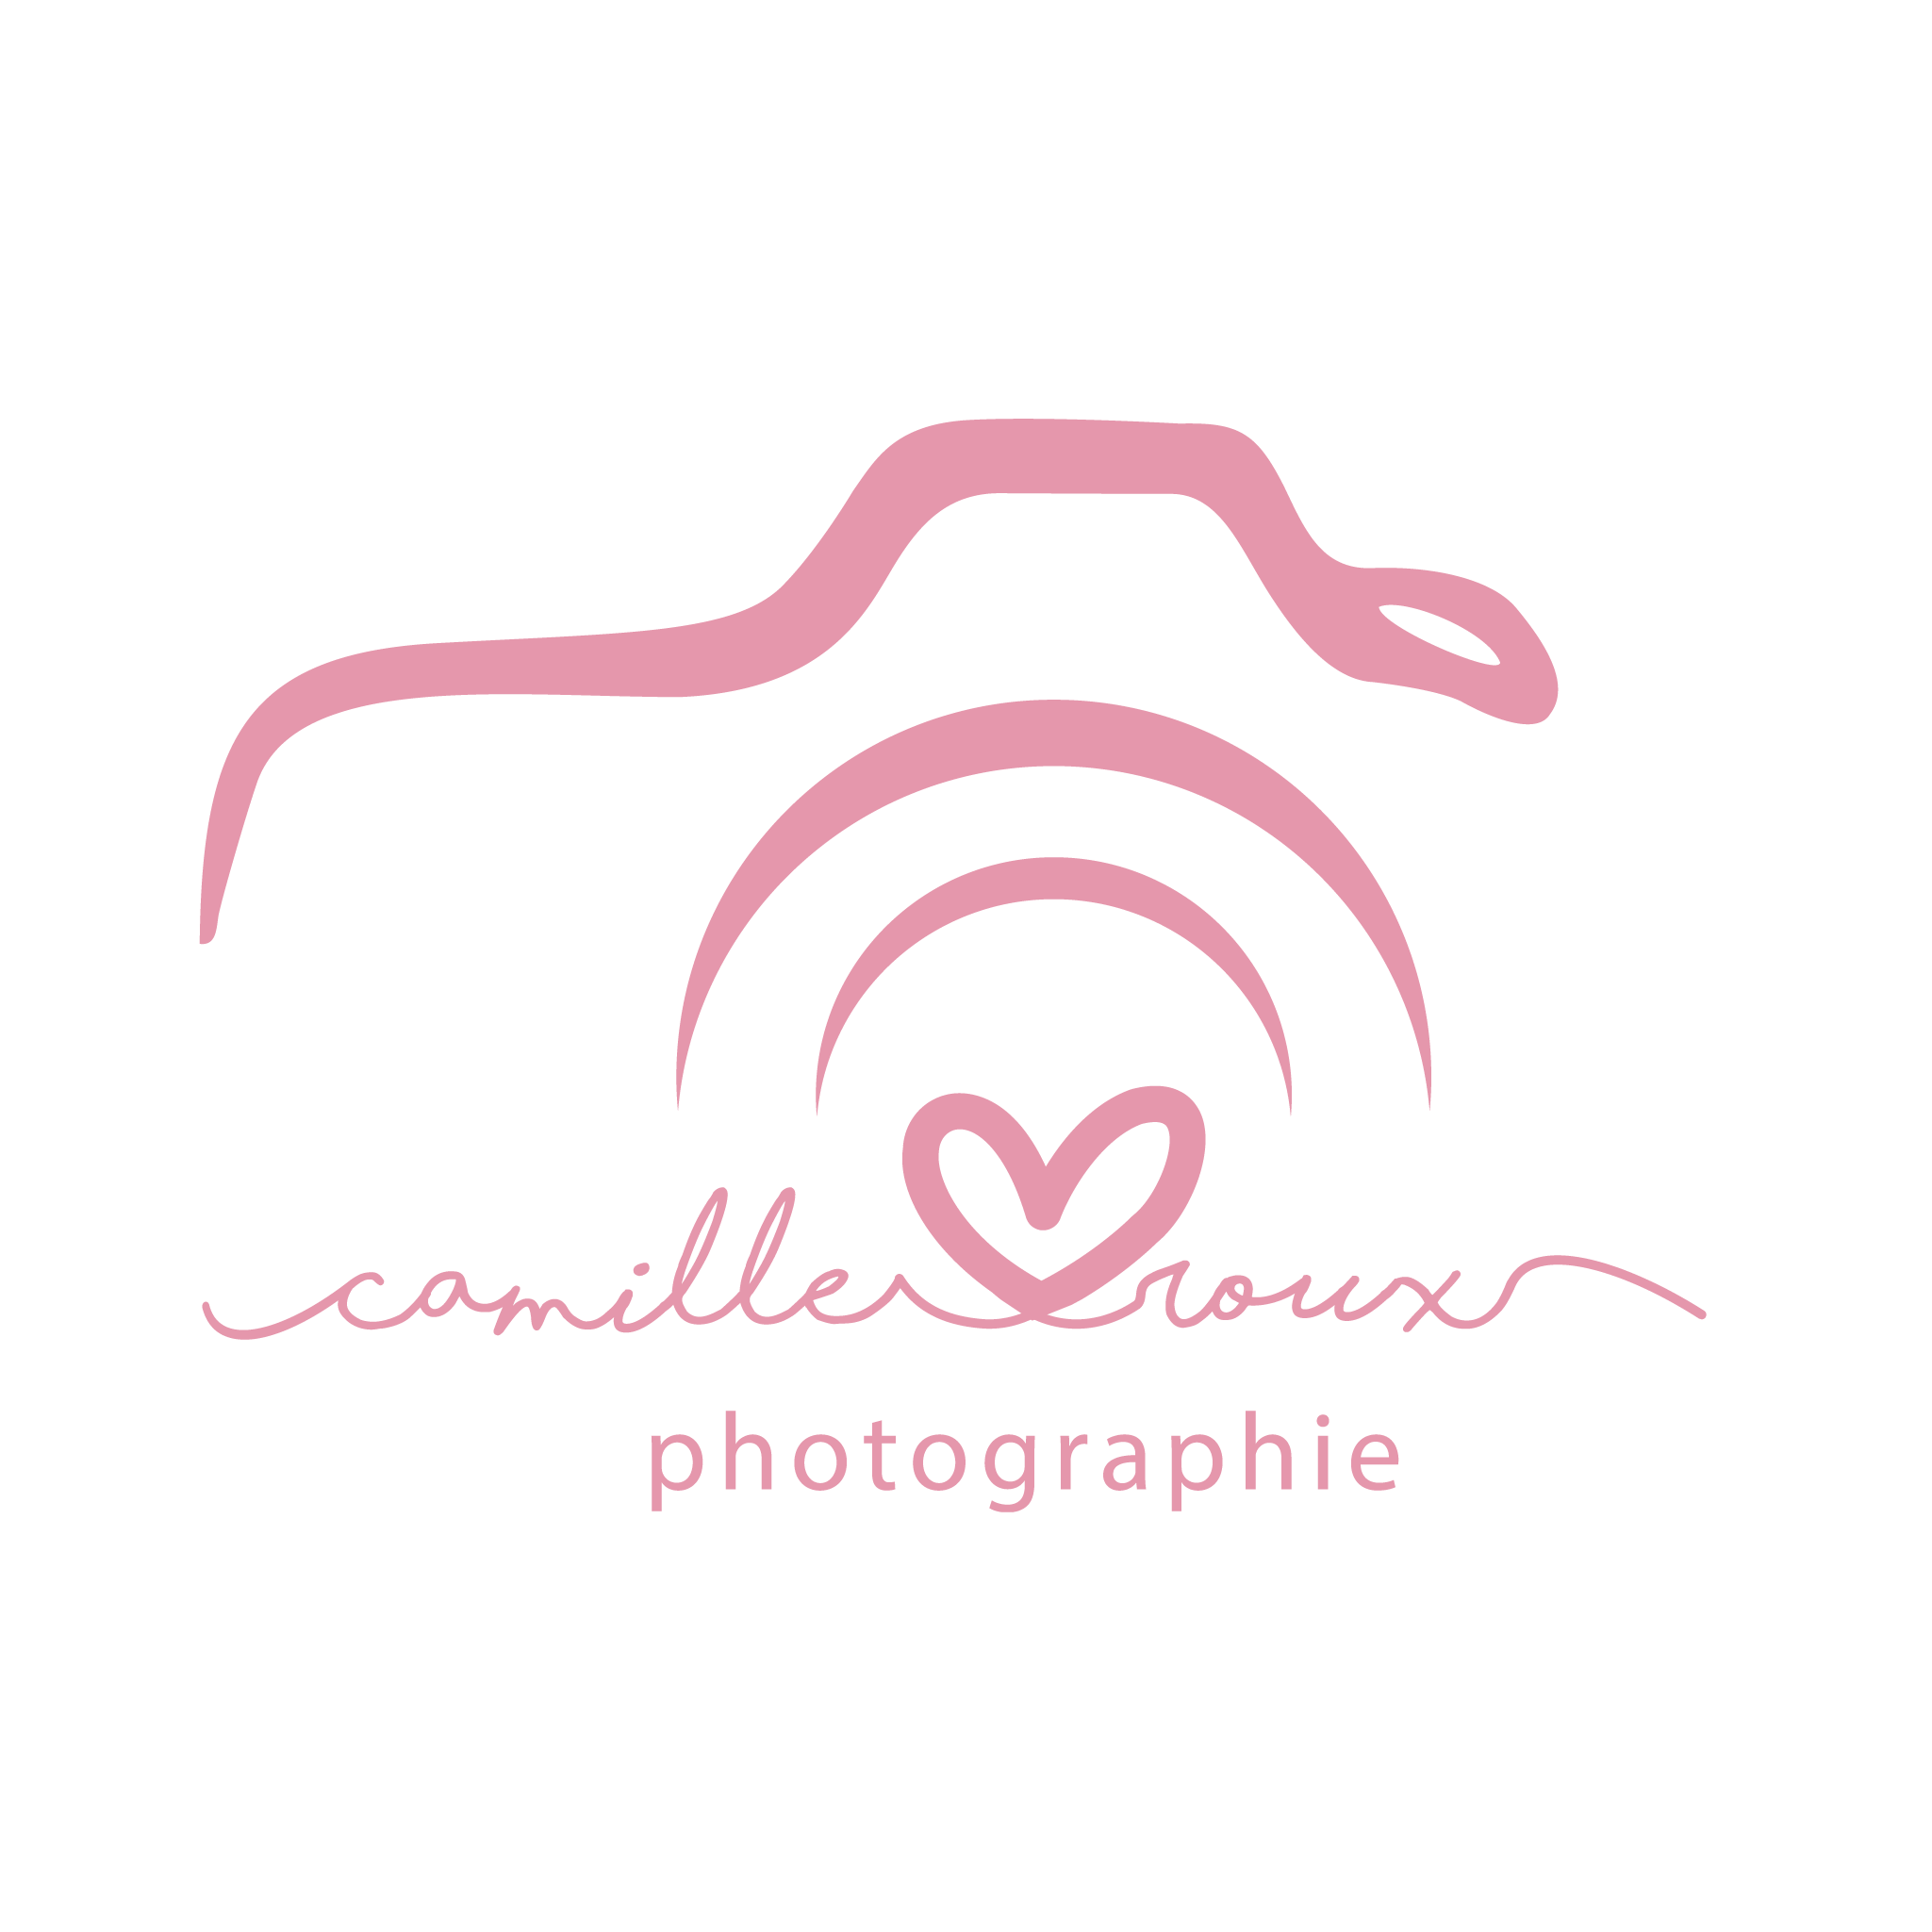 Camille Roux Photographie